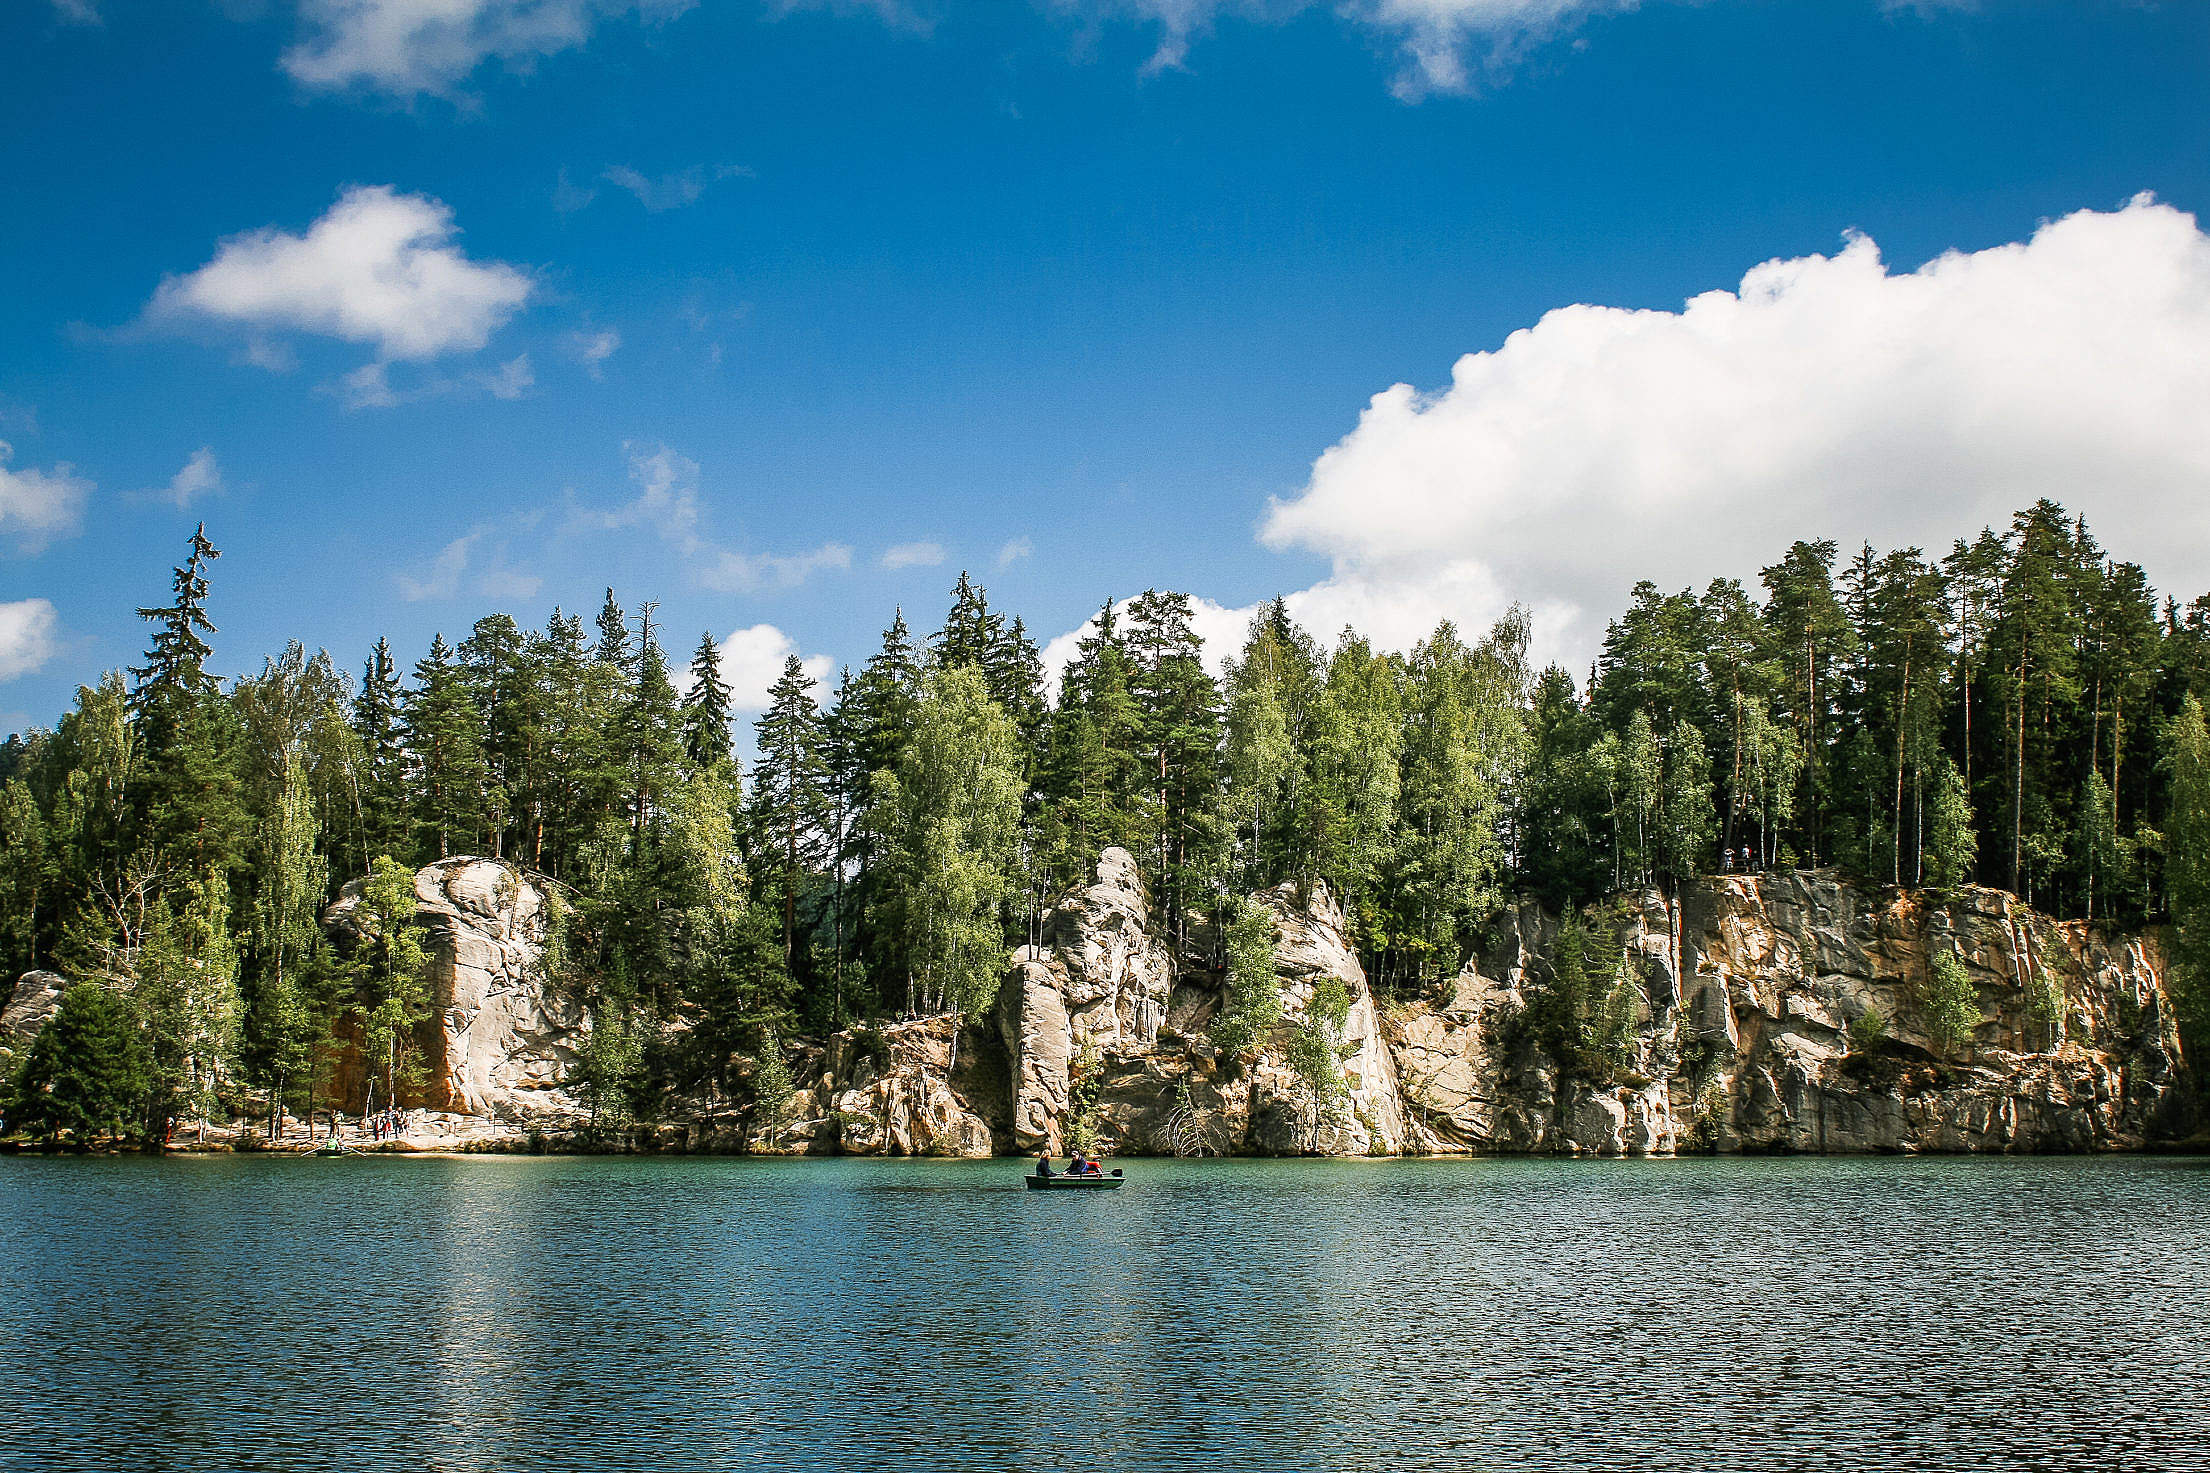 Adrspach-Teplice Rocks & Lake Panorama Free Stock Photo